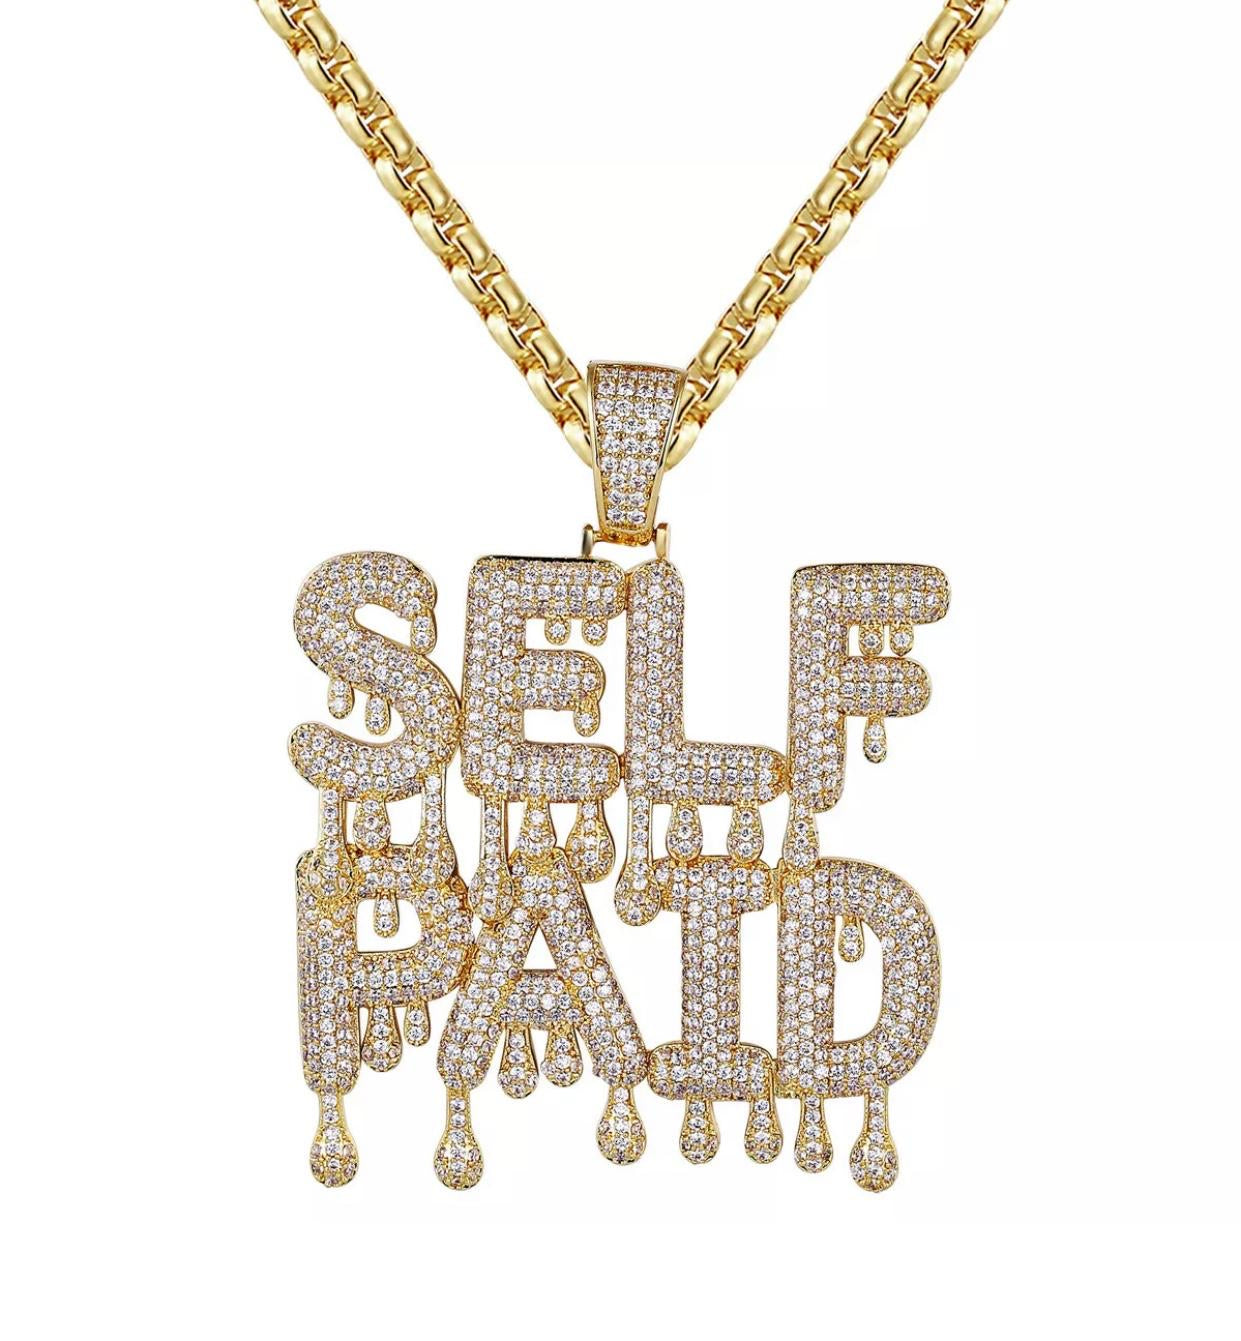 Self Paid pendant with Necklace